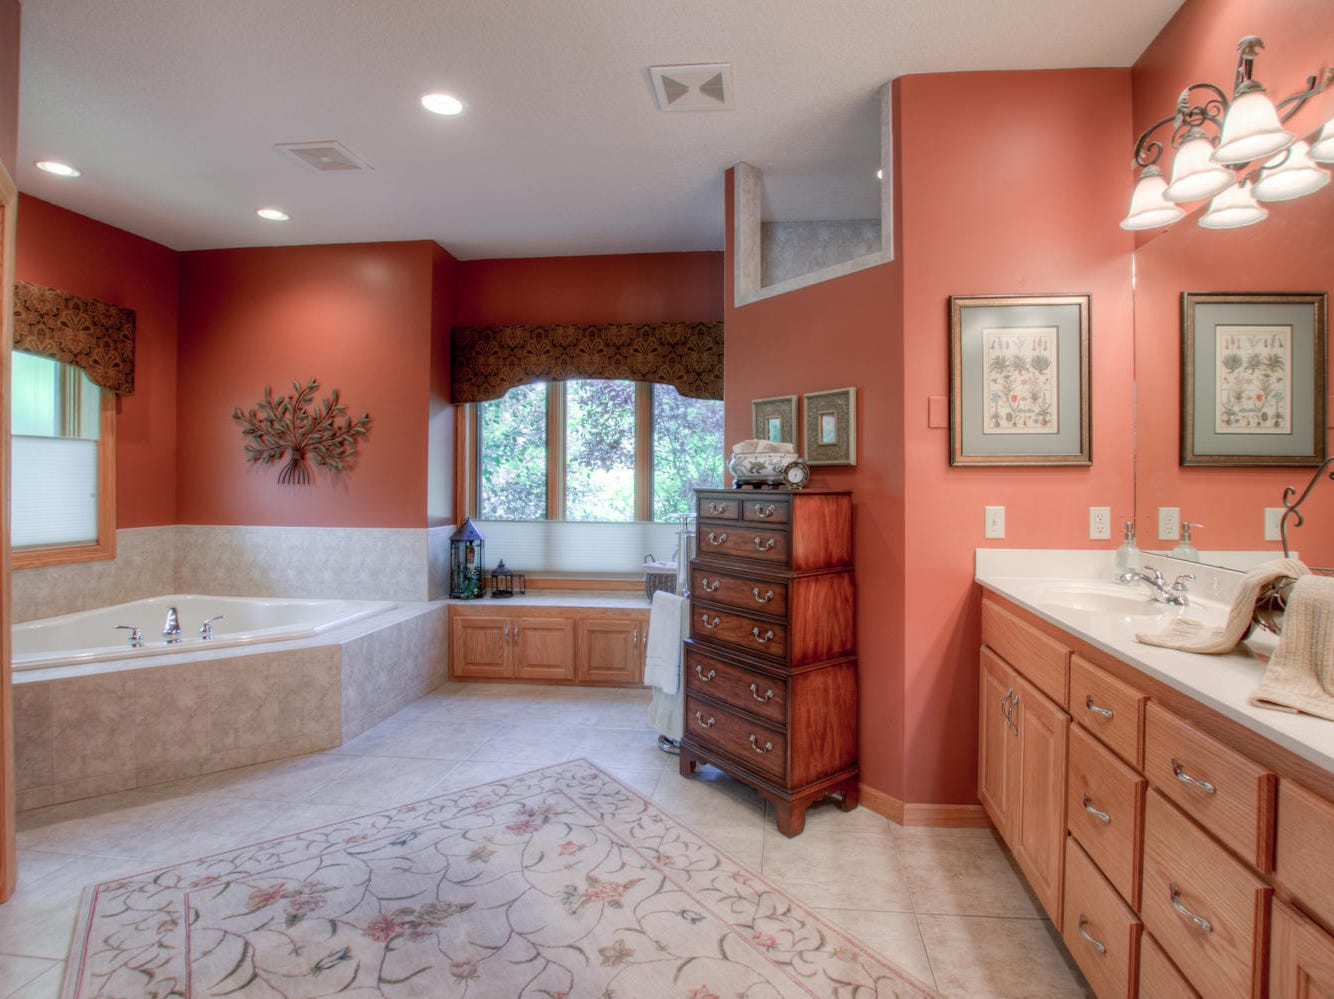 The en suite is large, complete with a soaking tub, double vanity and a water closet.